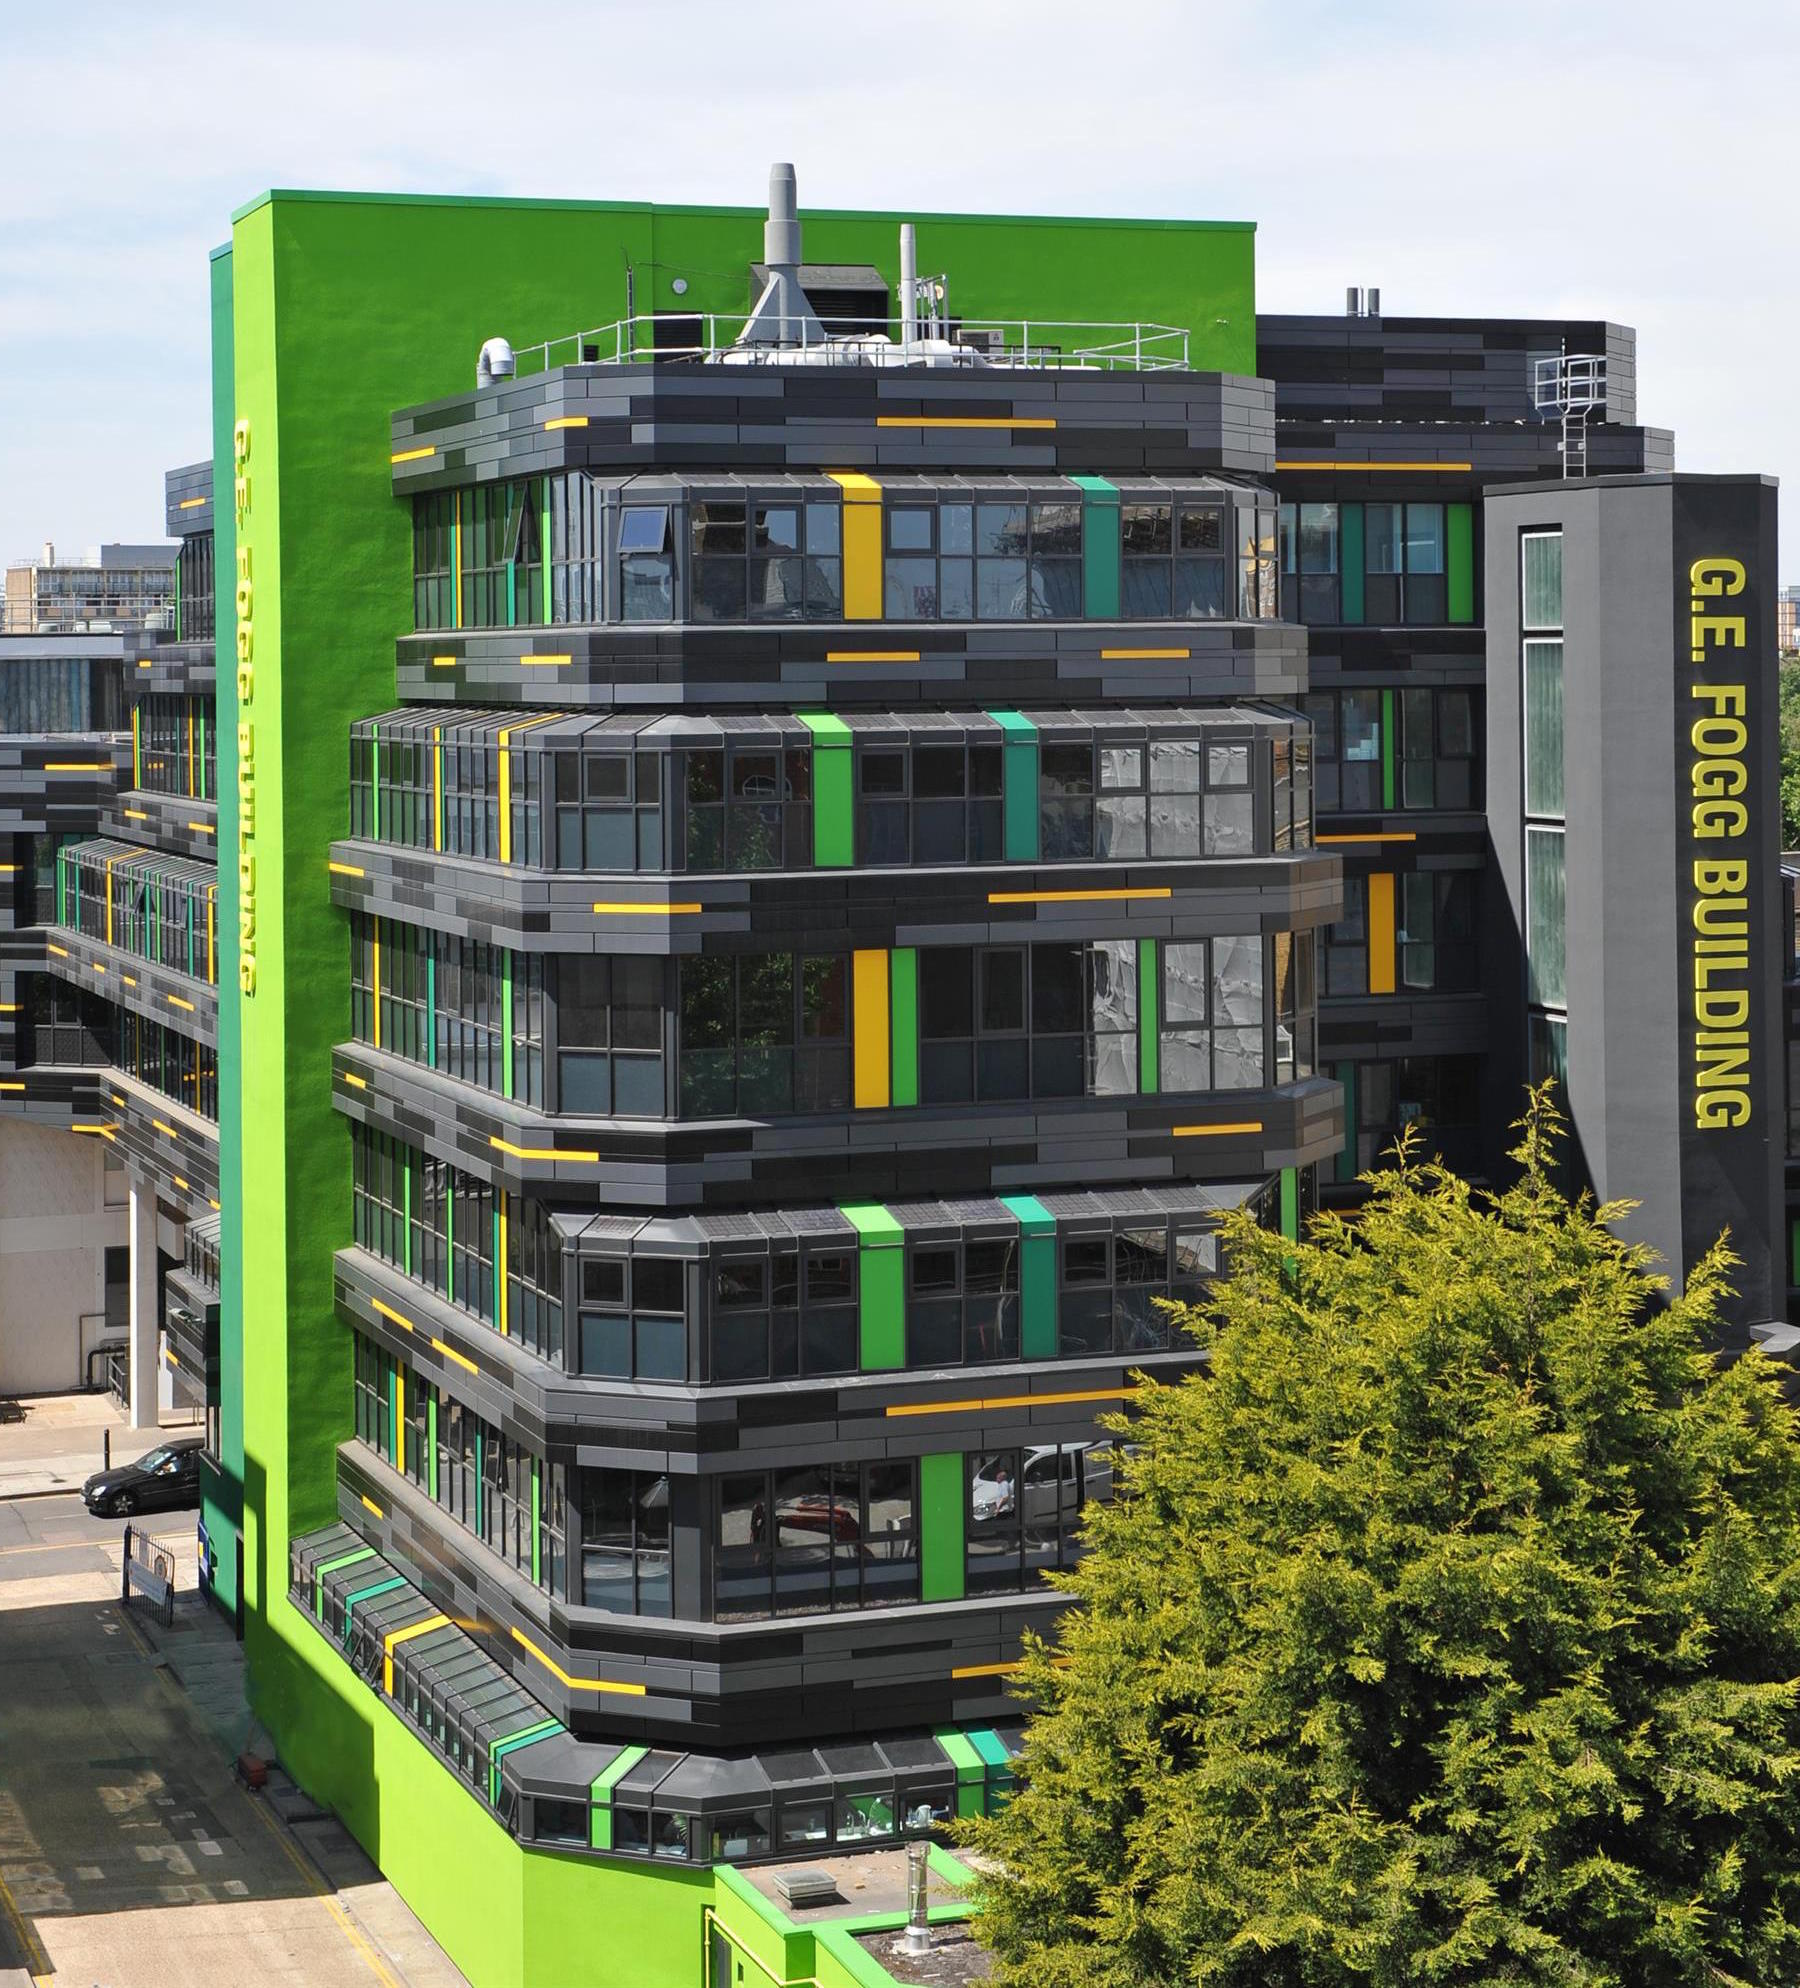 Aerial view of QMUL Fogg Building